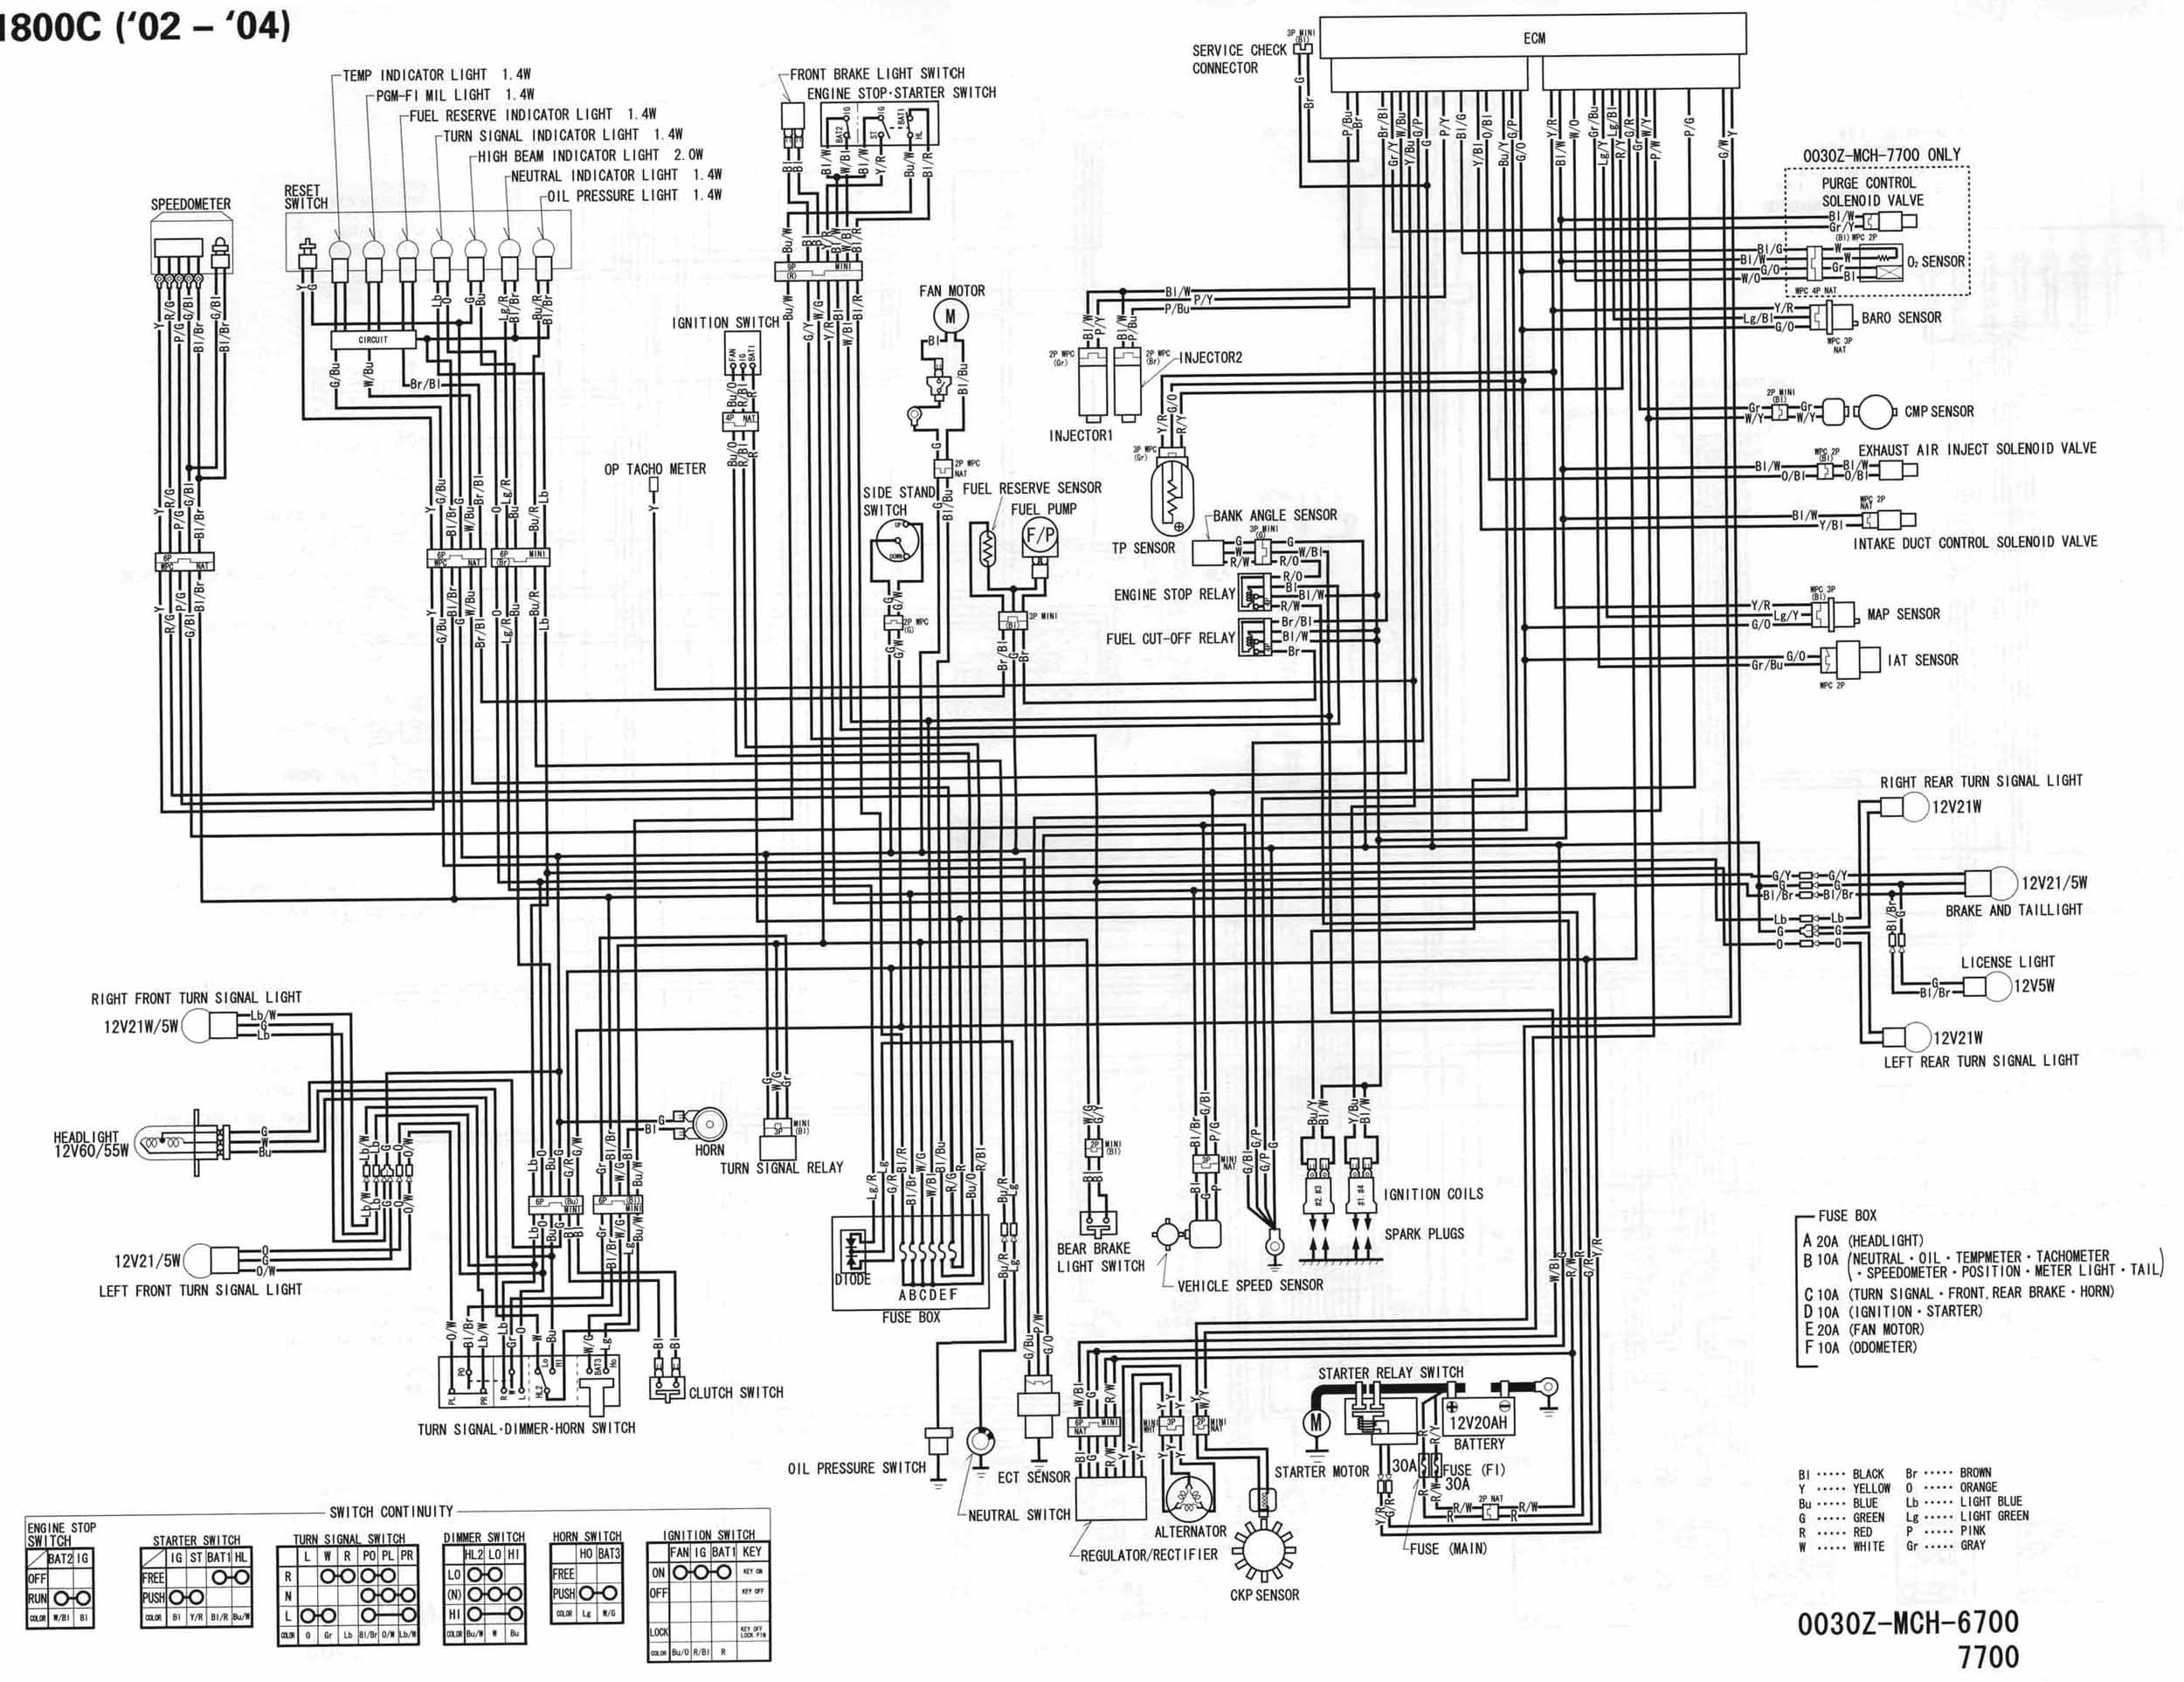 02 04_VTX1800_C_schematic motorcycle wire schematics bareass choppers motorcycle tech pages Basic Motorcycle Wiring Diagram at gsmx.co